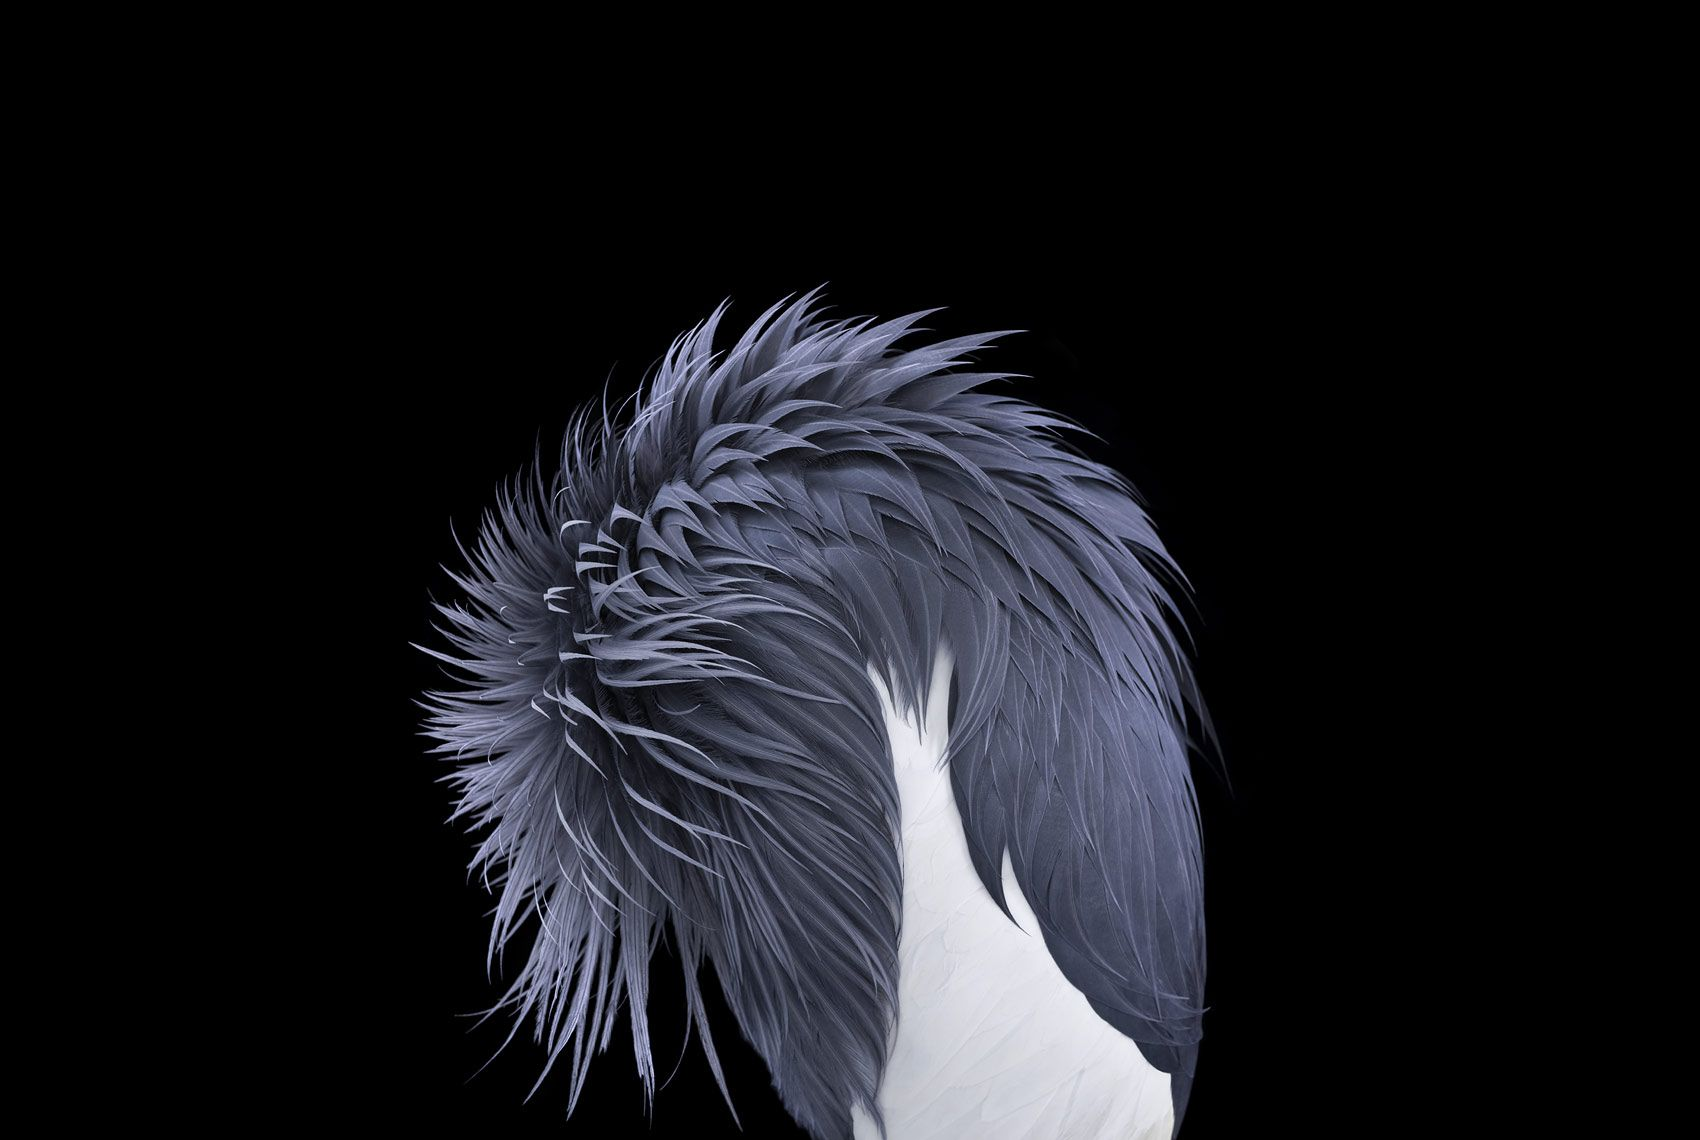 African Crowned Crane #4,  Los Angeles, CA, 2011,Brad Wilson,Photographie